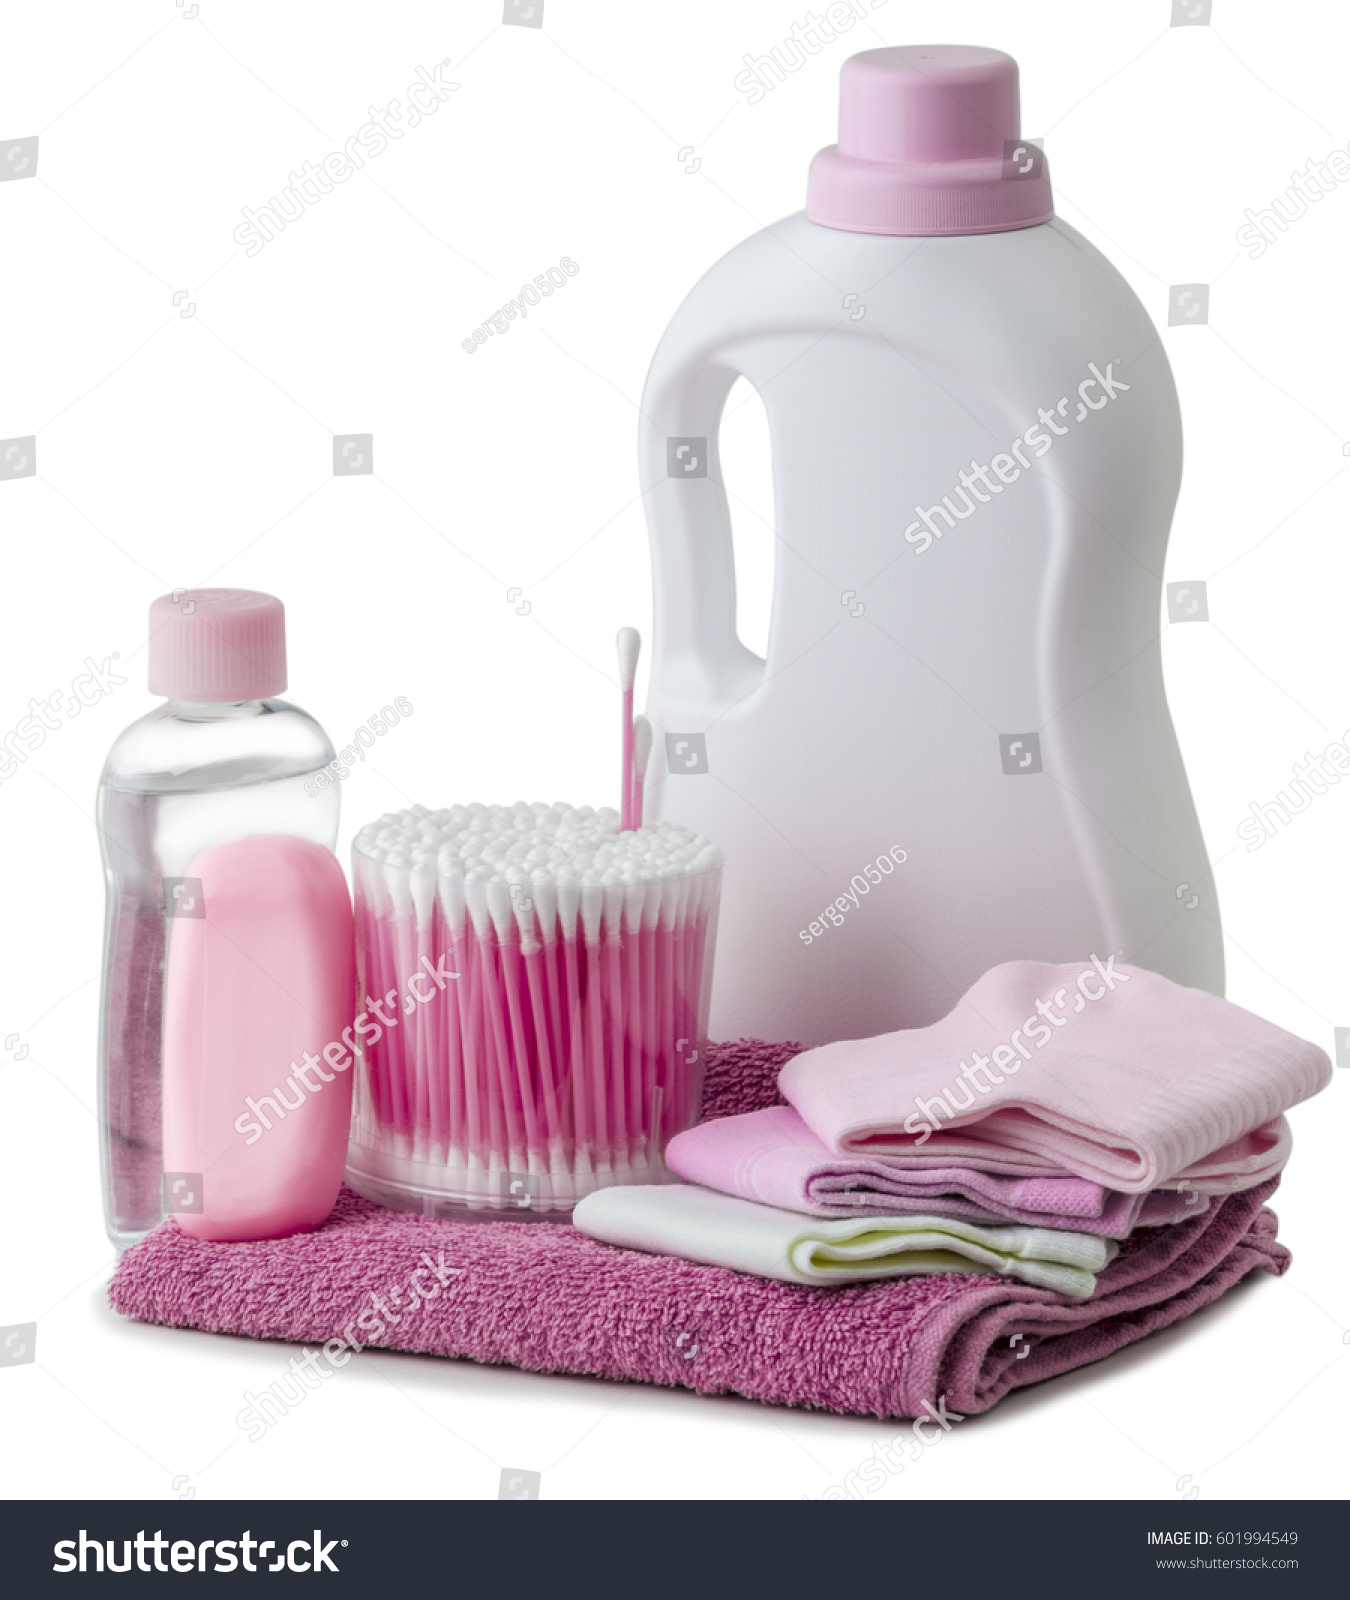 Hygiene Products Bathroom Accessories Stock Photo (Royalty Free ...